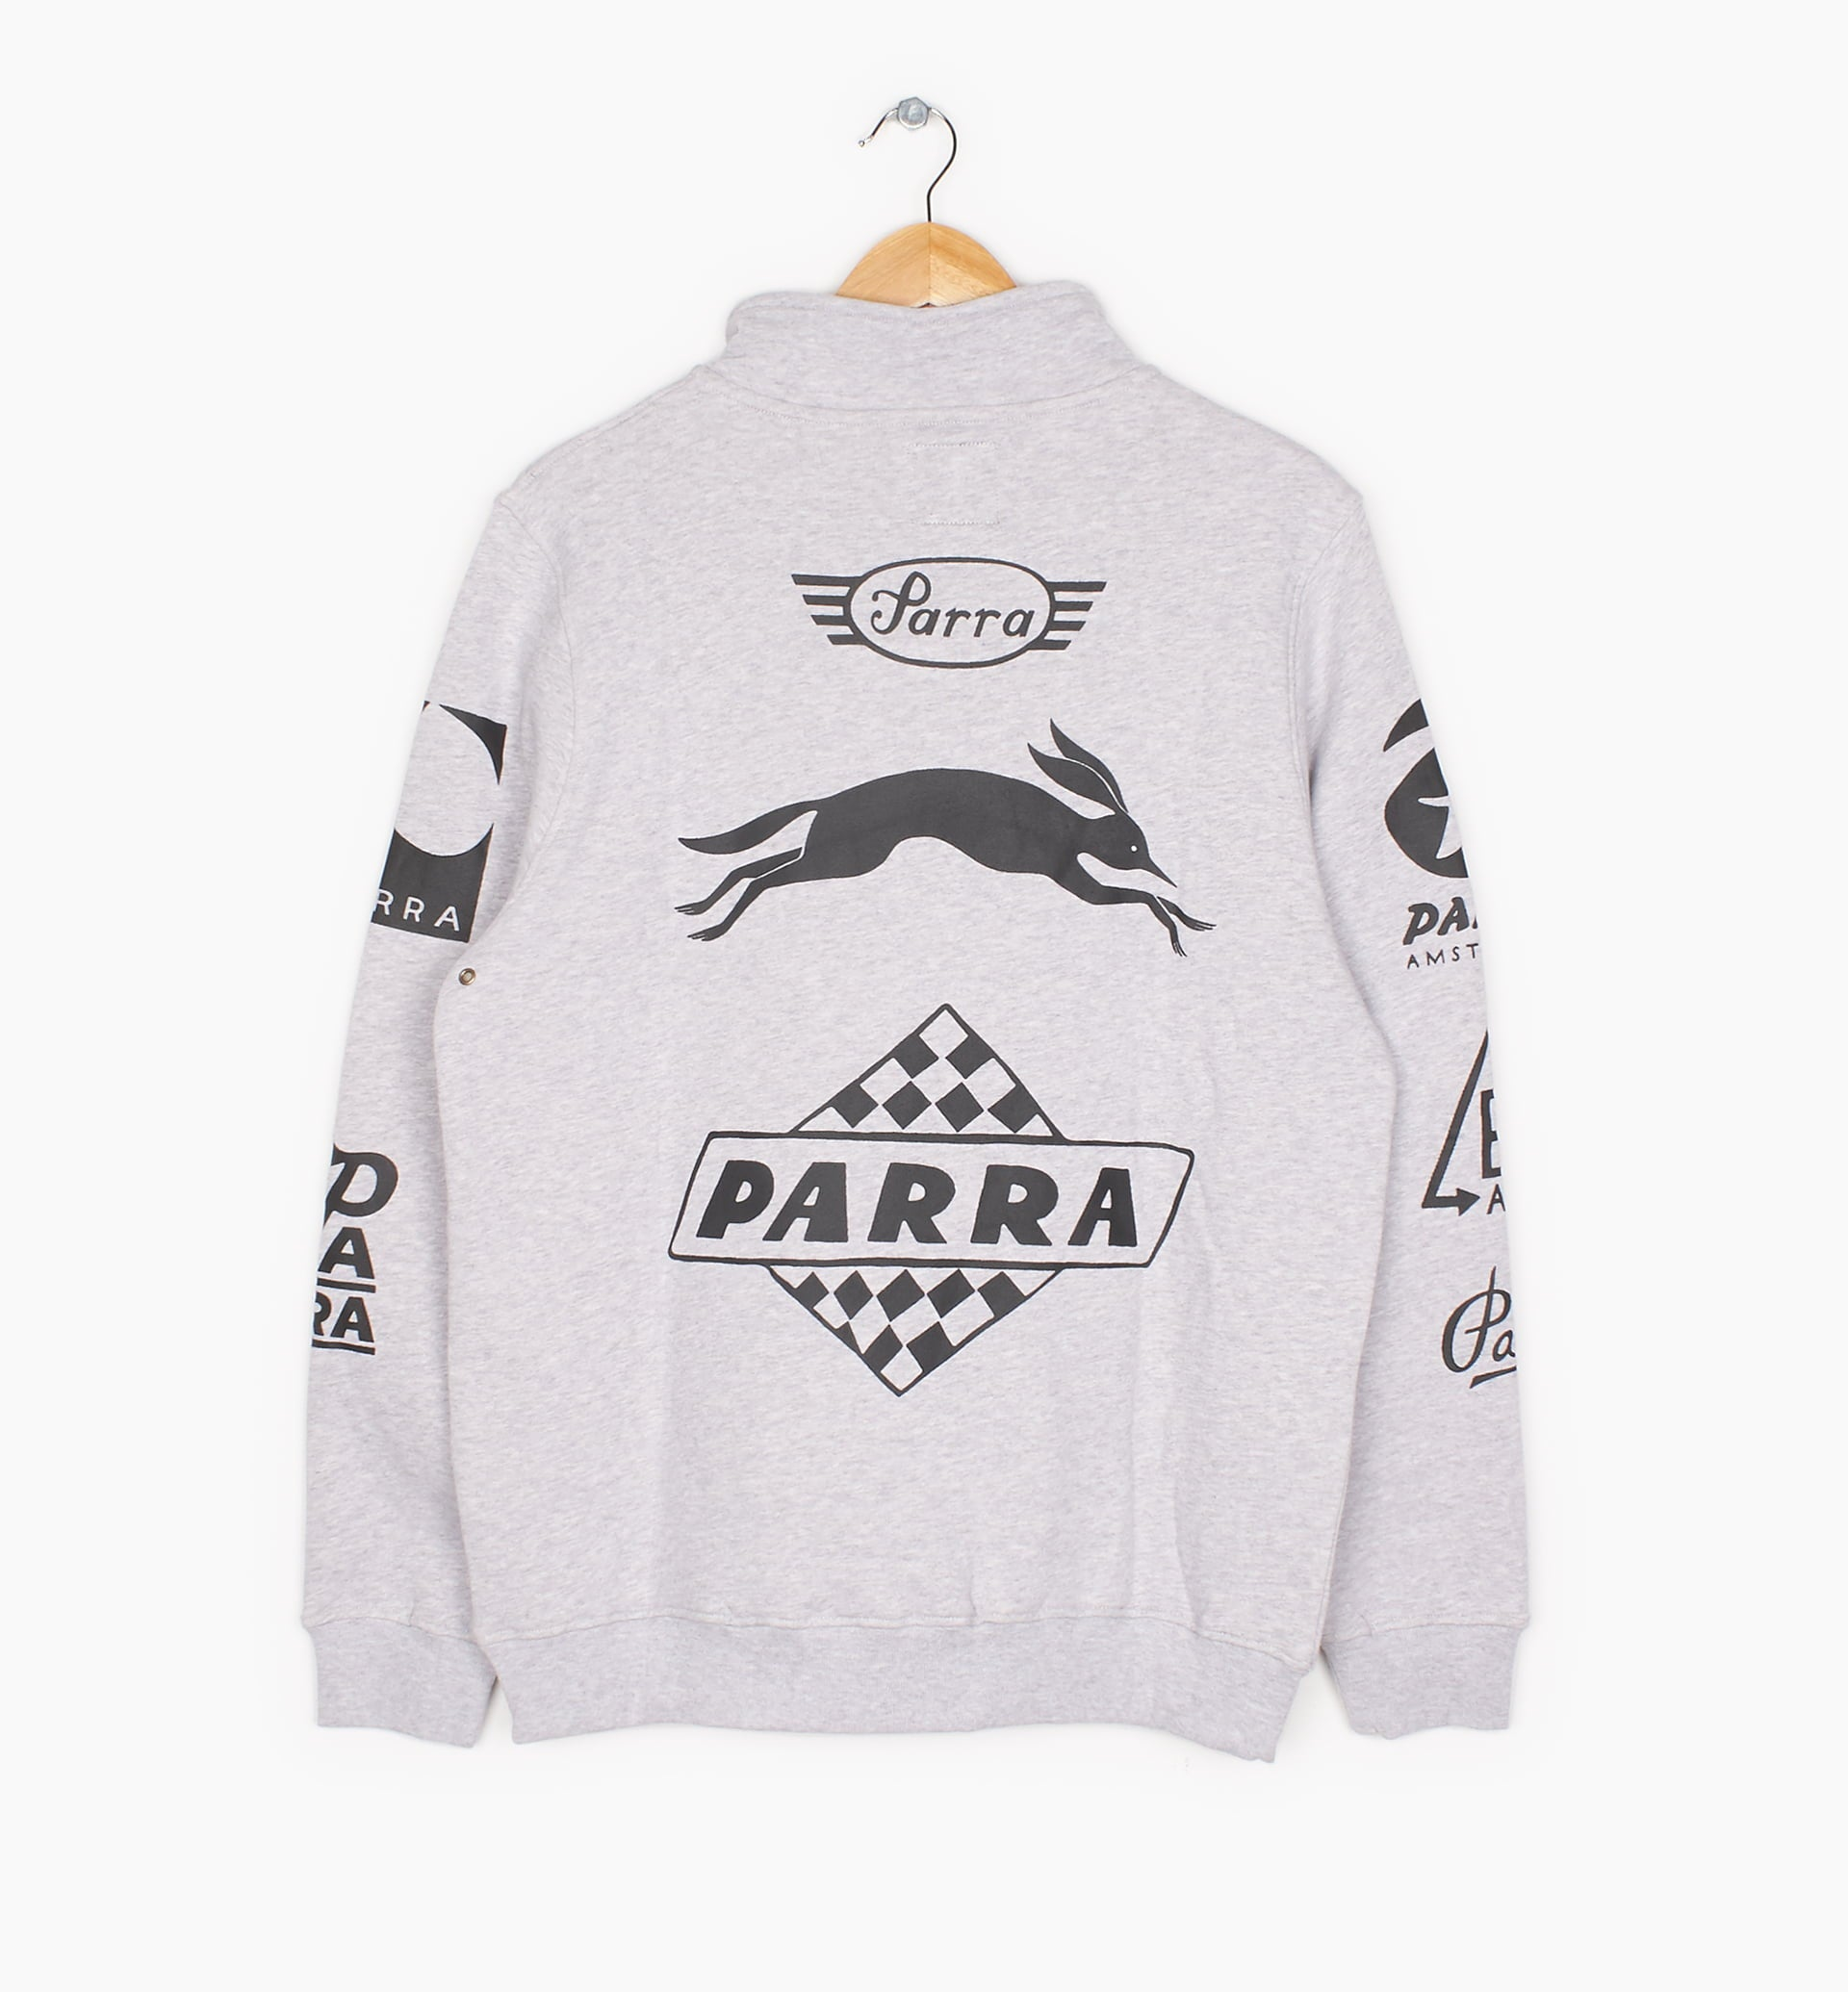 Parra - sponsored quarter zip sweater